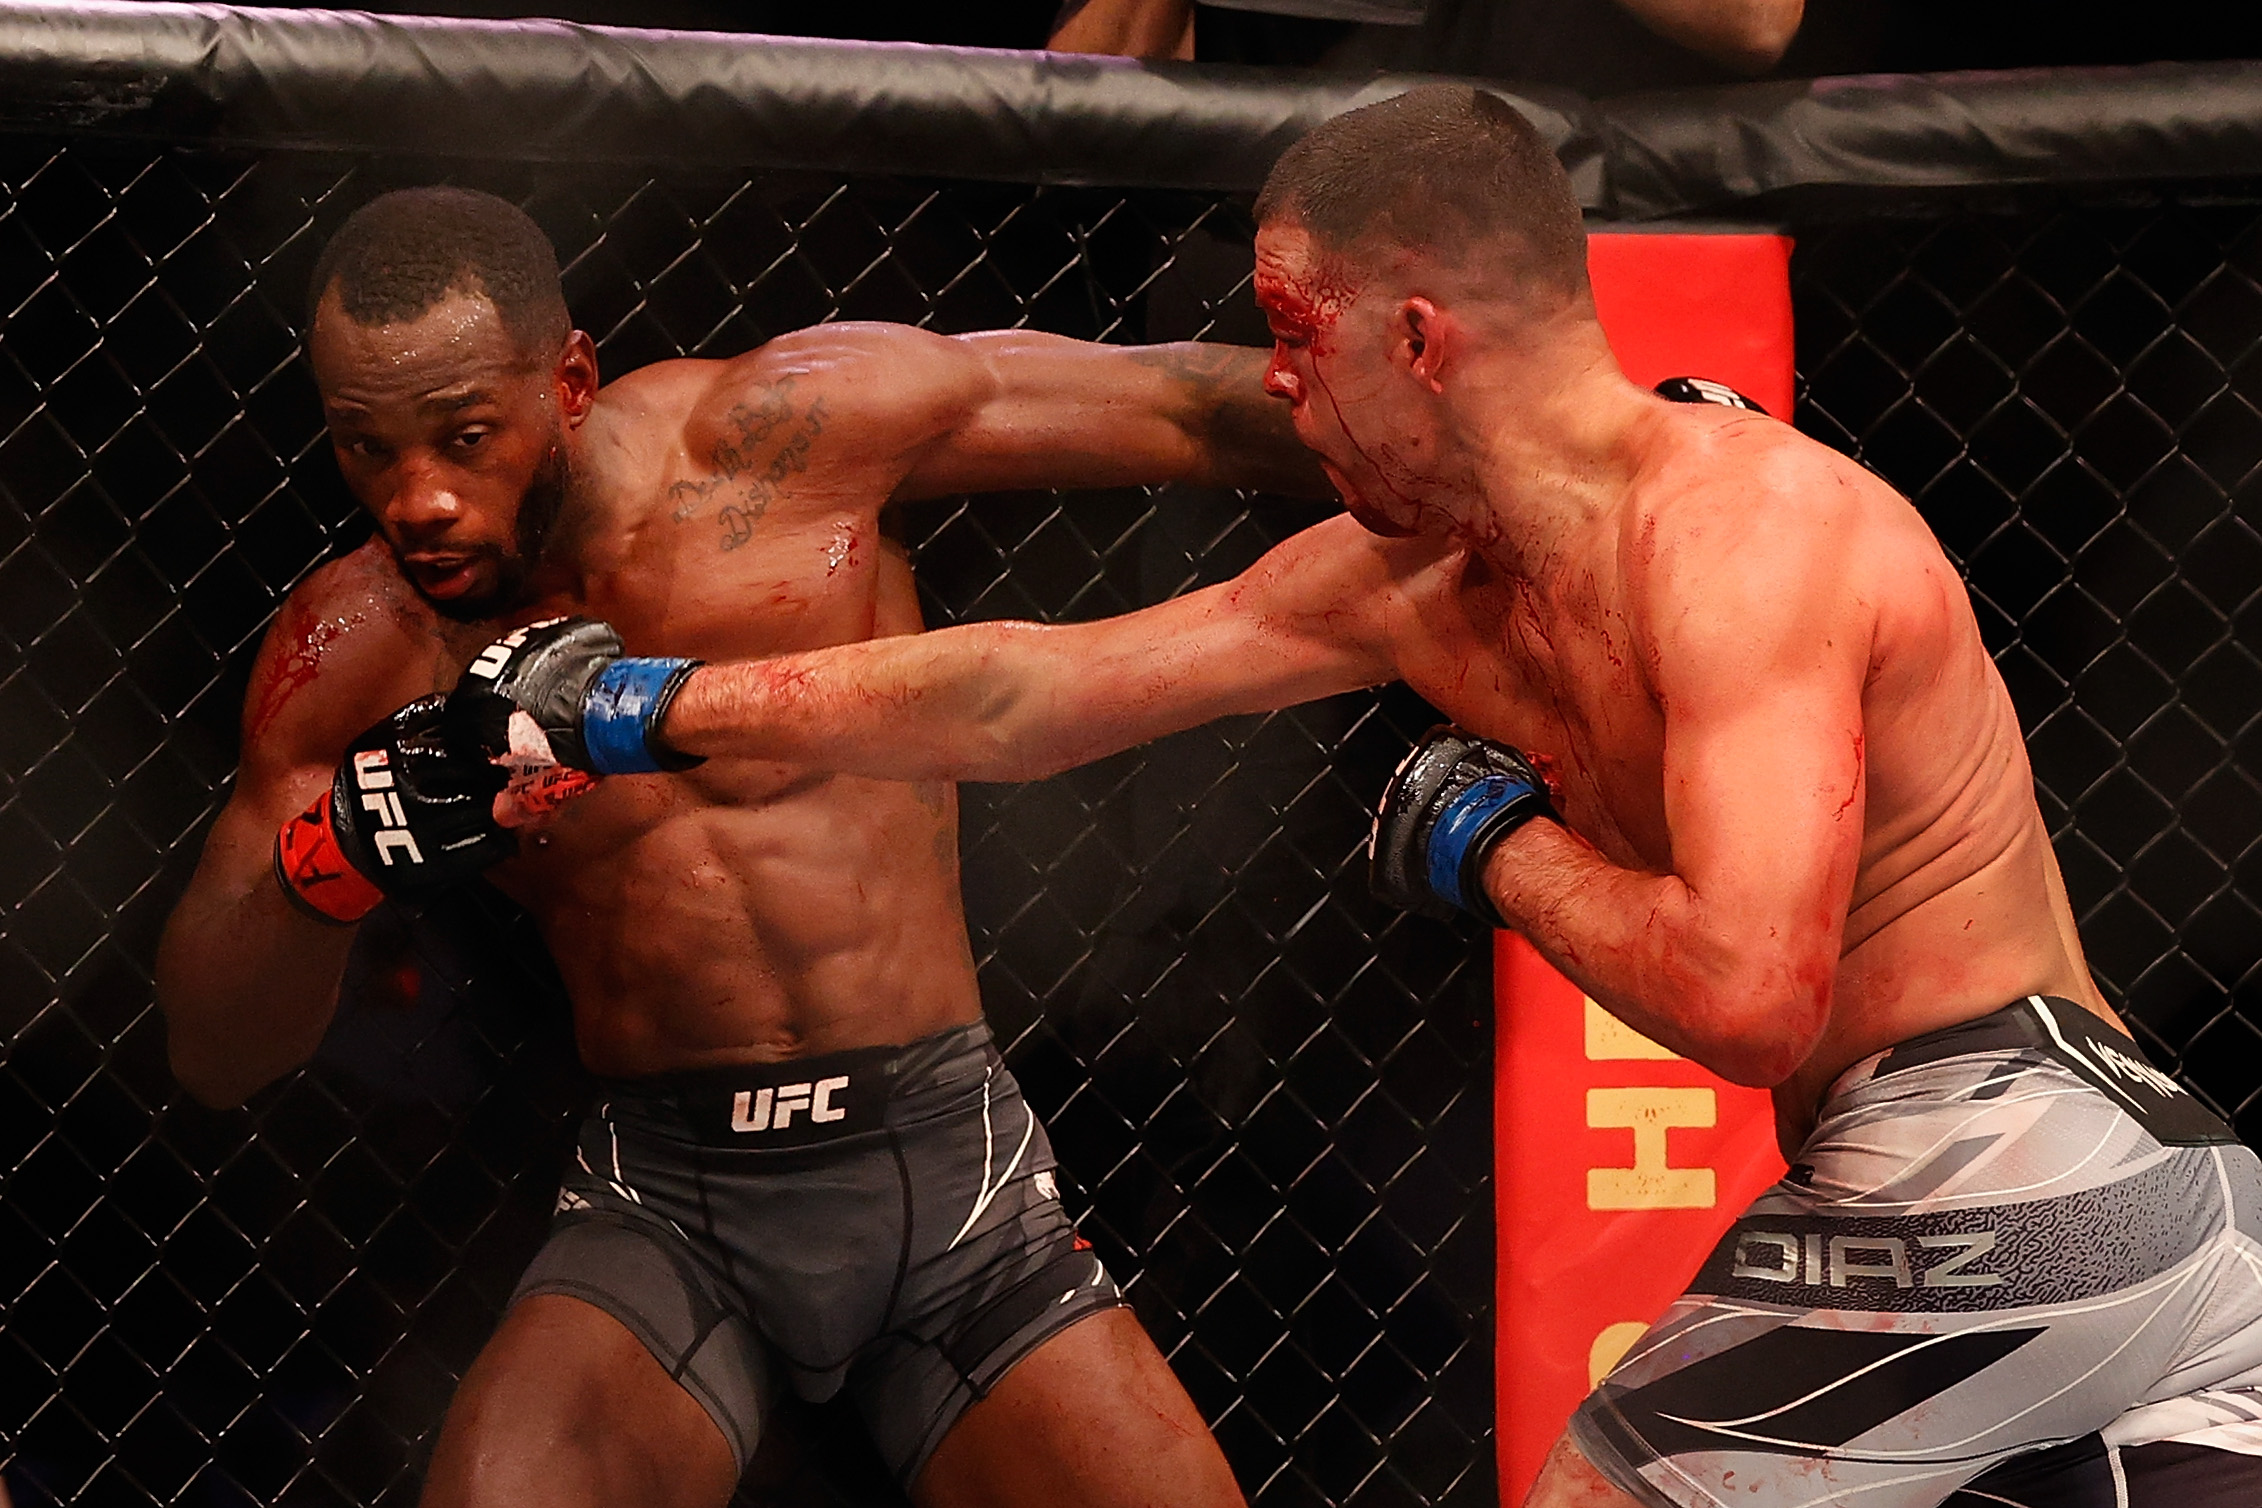 Leon Edwards eats a right hand during his UFC 263 fight against Nate Diaz.